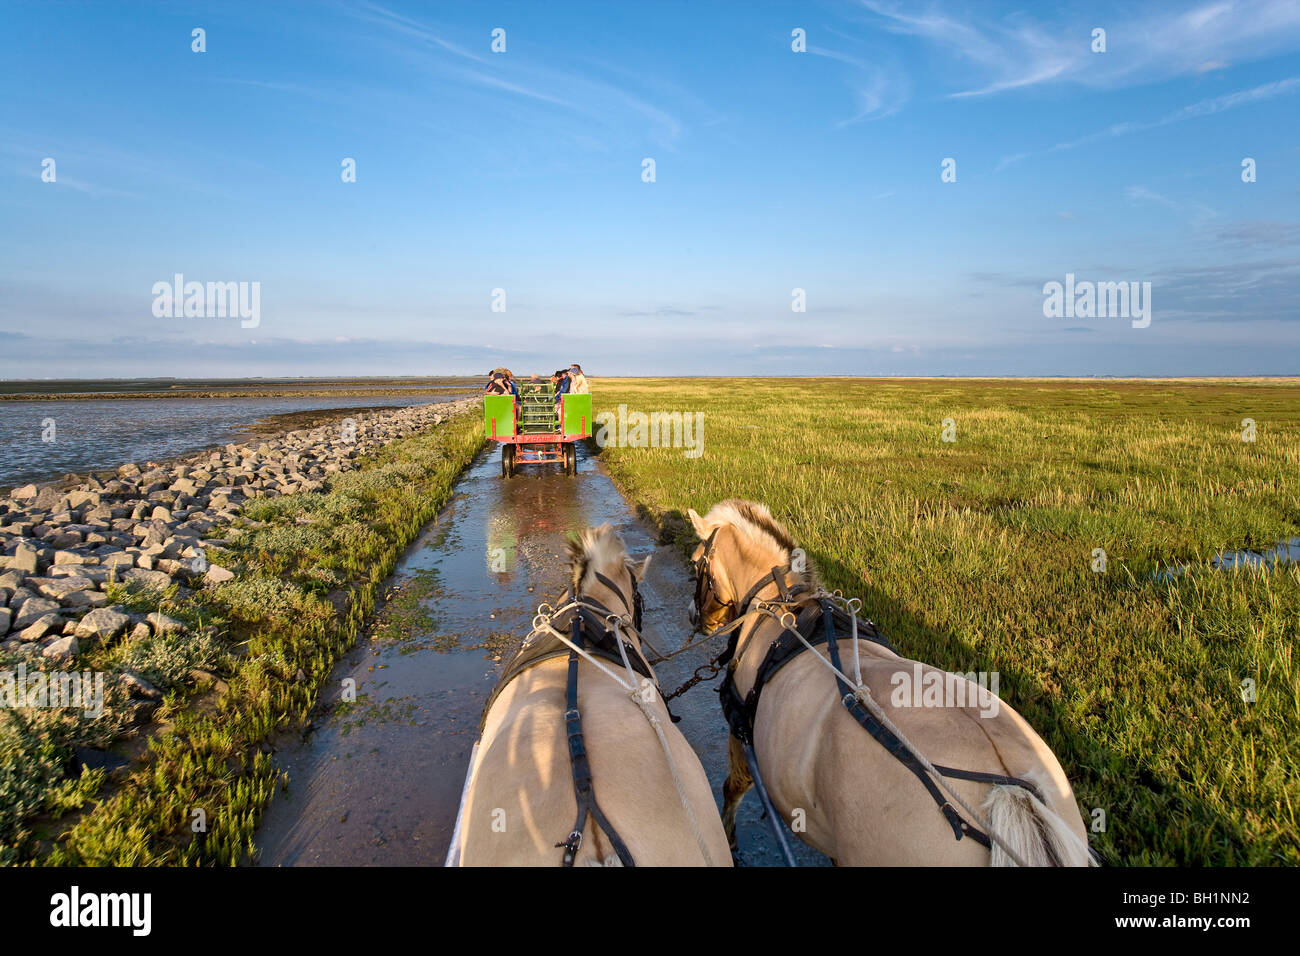 Horse Carriage Tour to Hallig Suedfall, North Frisian Islands, Schleswig-Holstein, Germany - Stock Image